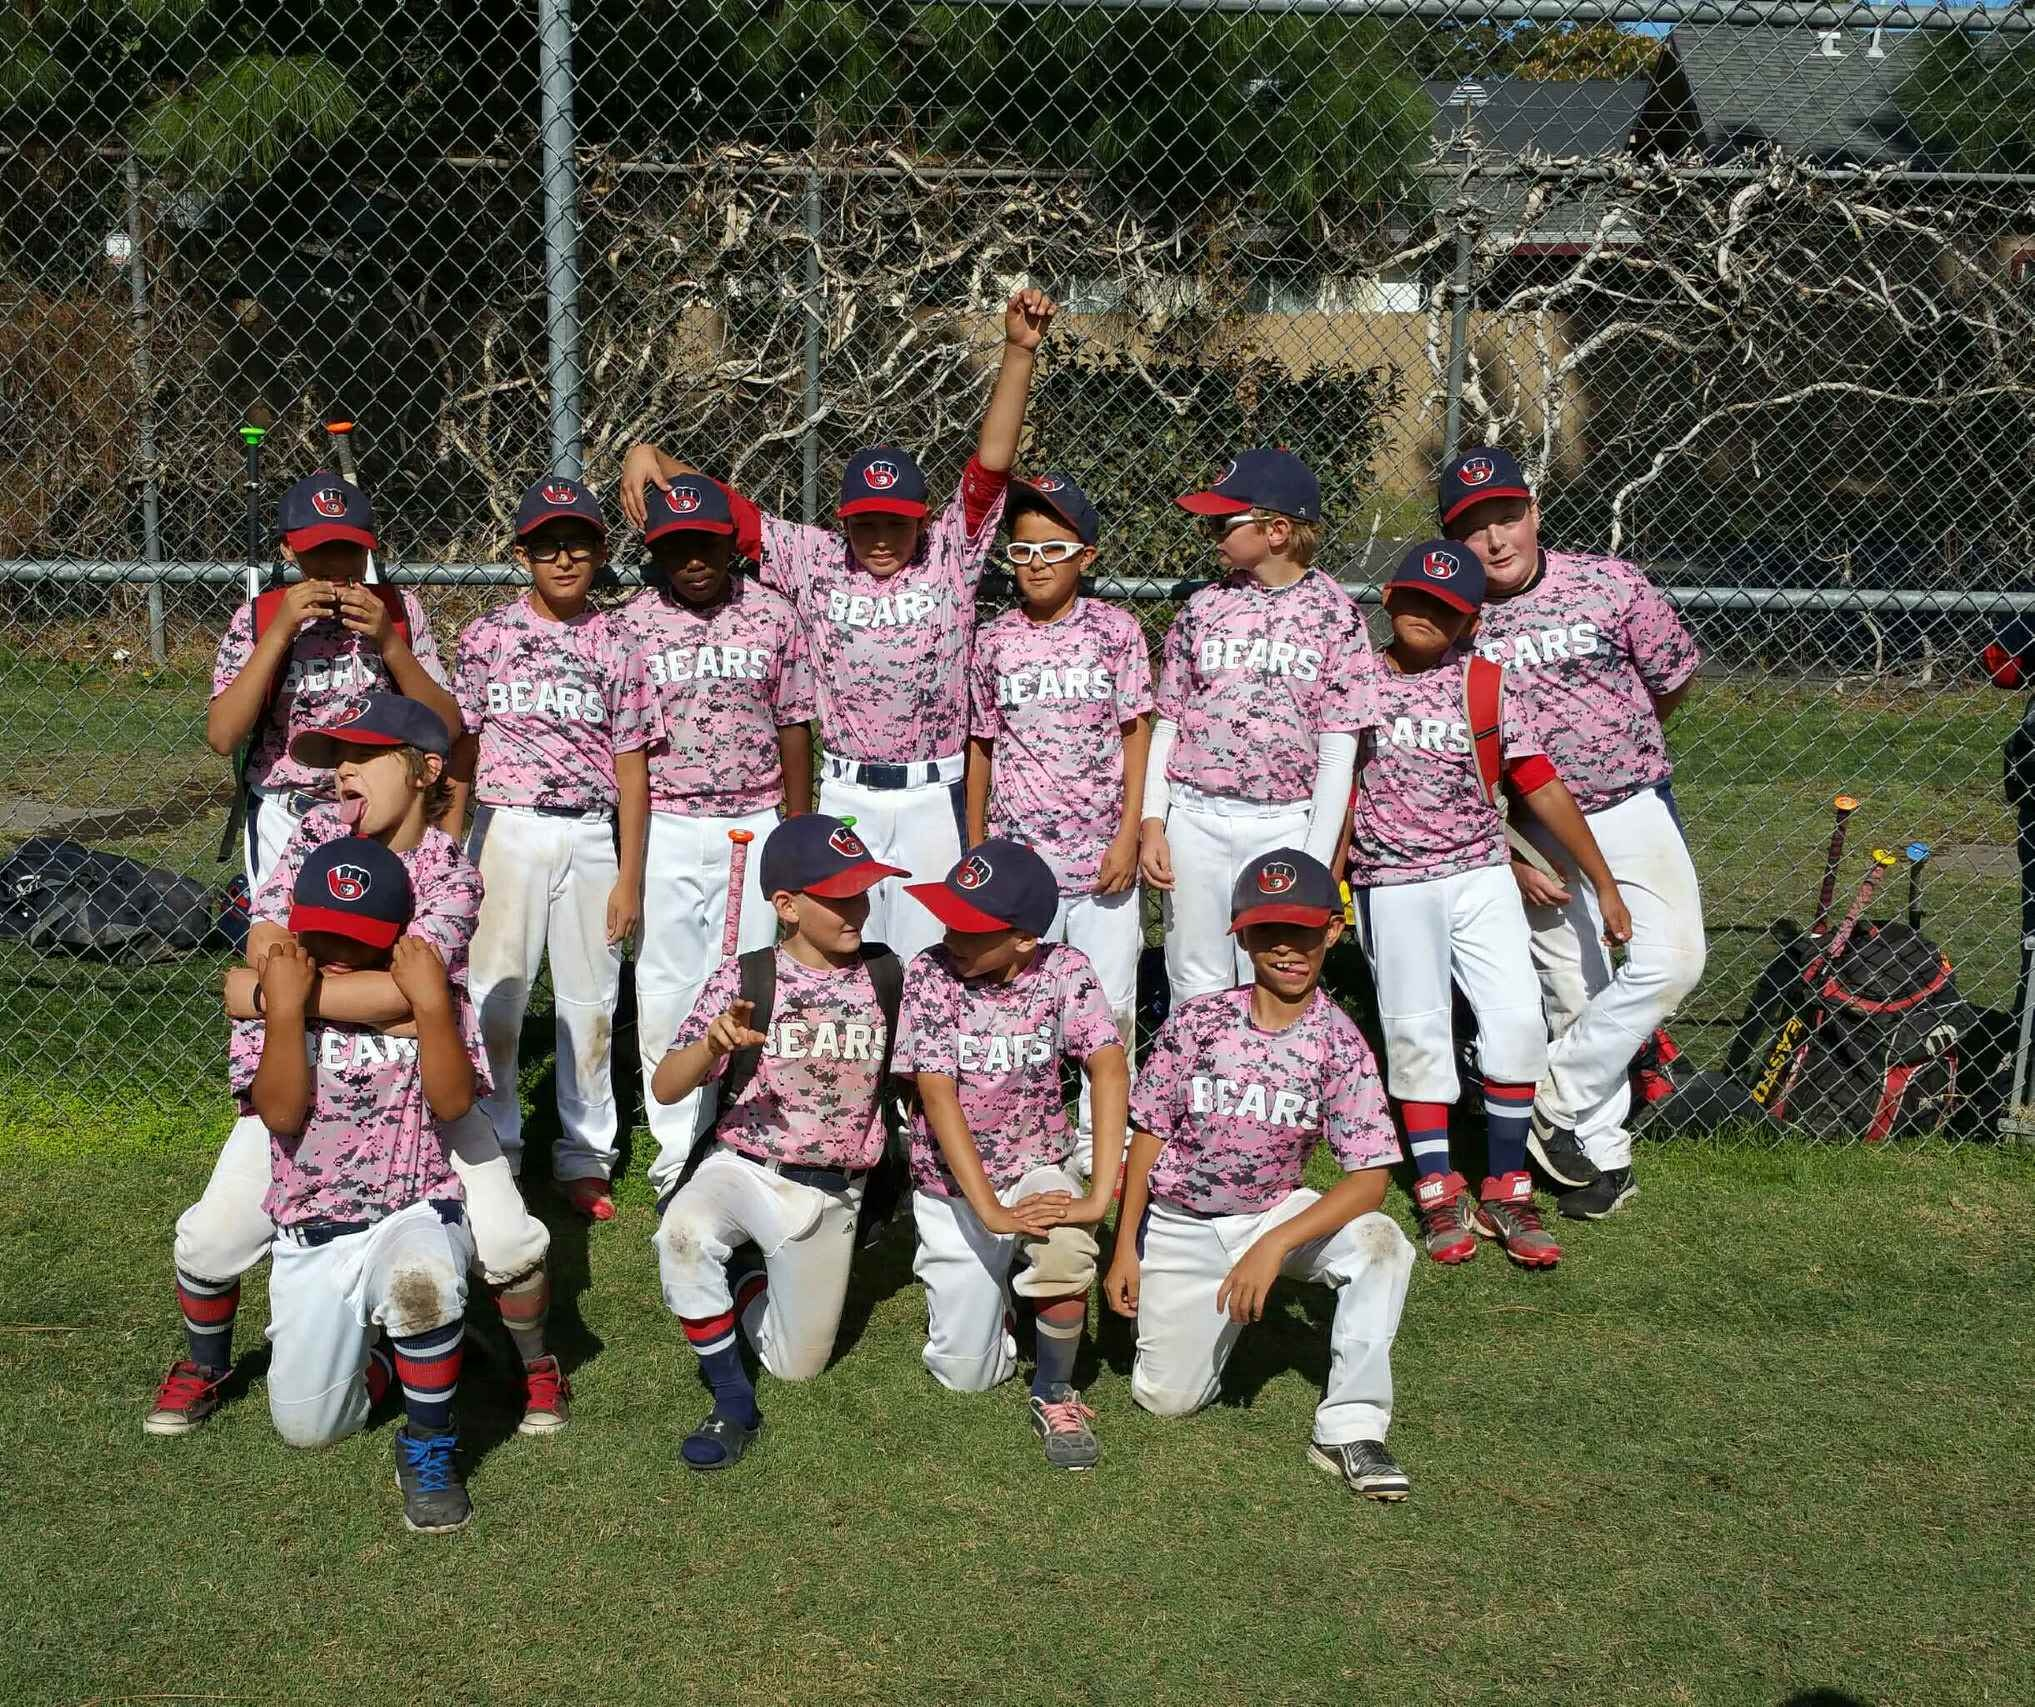 Mudville Bears 10u Nationals/Reno NV.